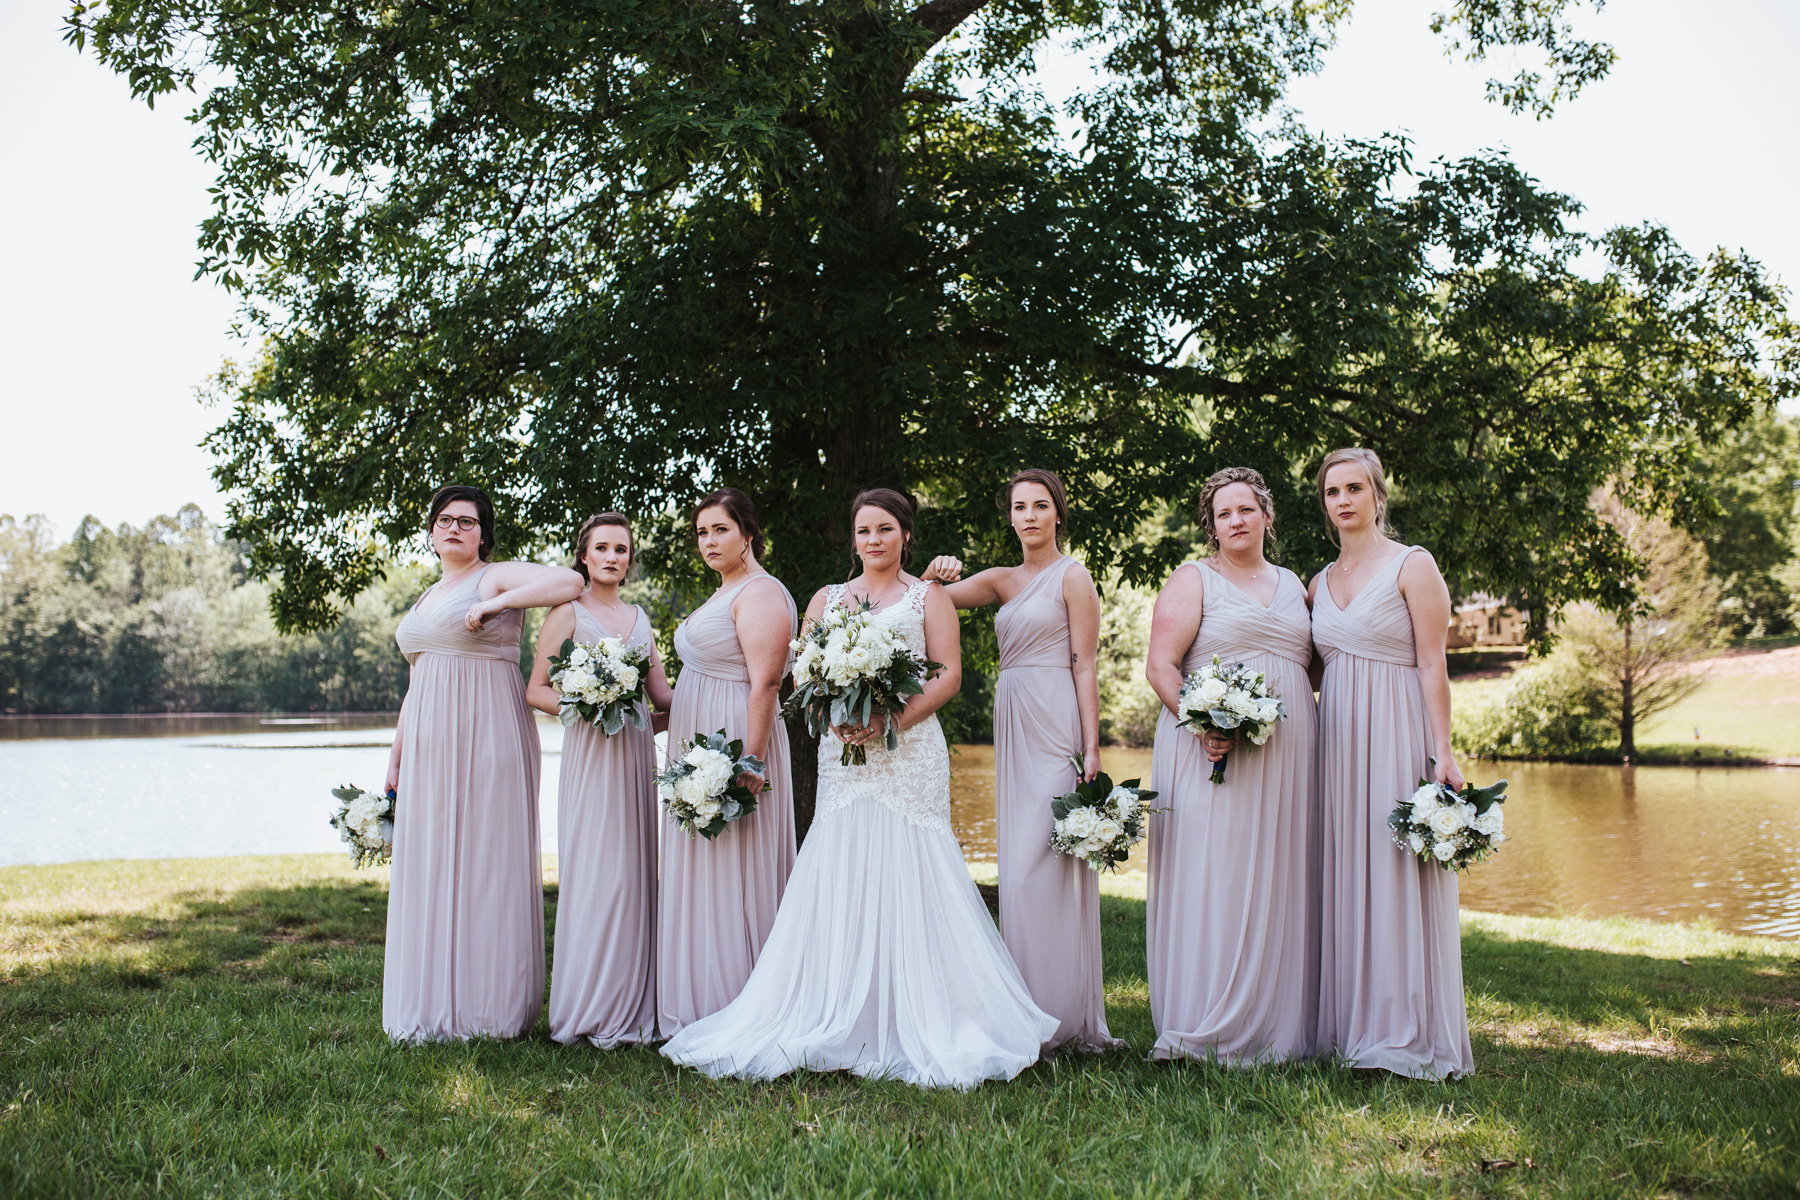 Wedding Bridal Party - Bride, bridesmaids, and flower girl | Kayli LaFon Photography